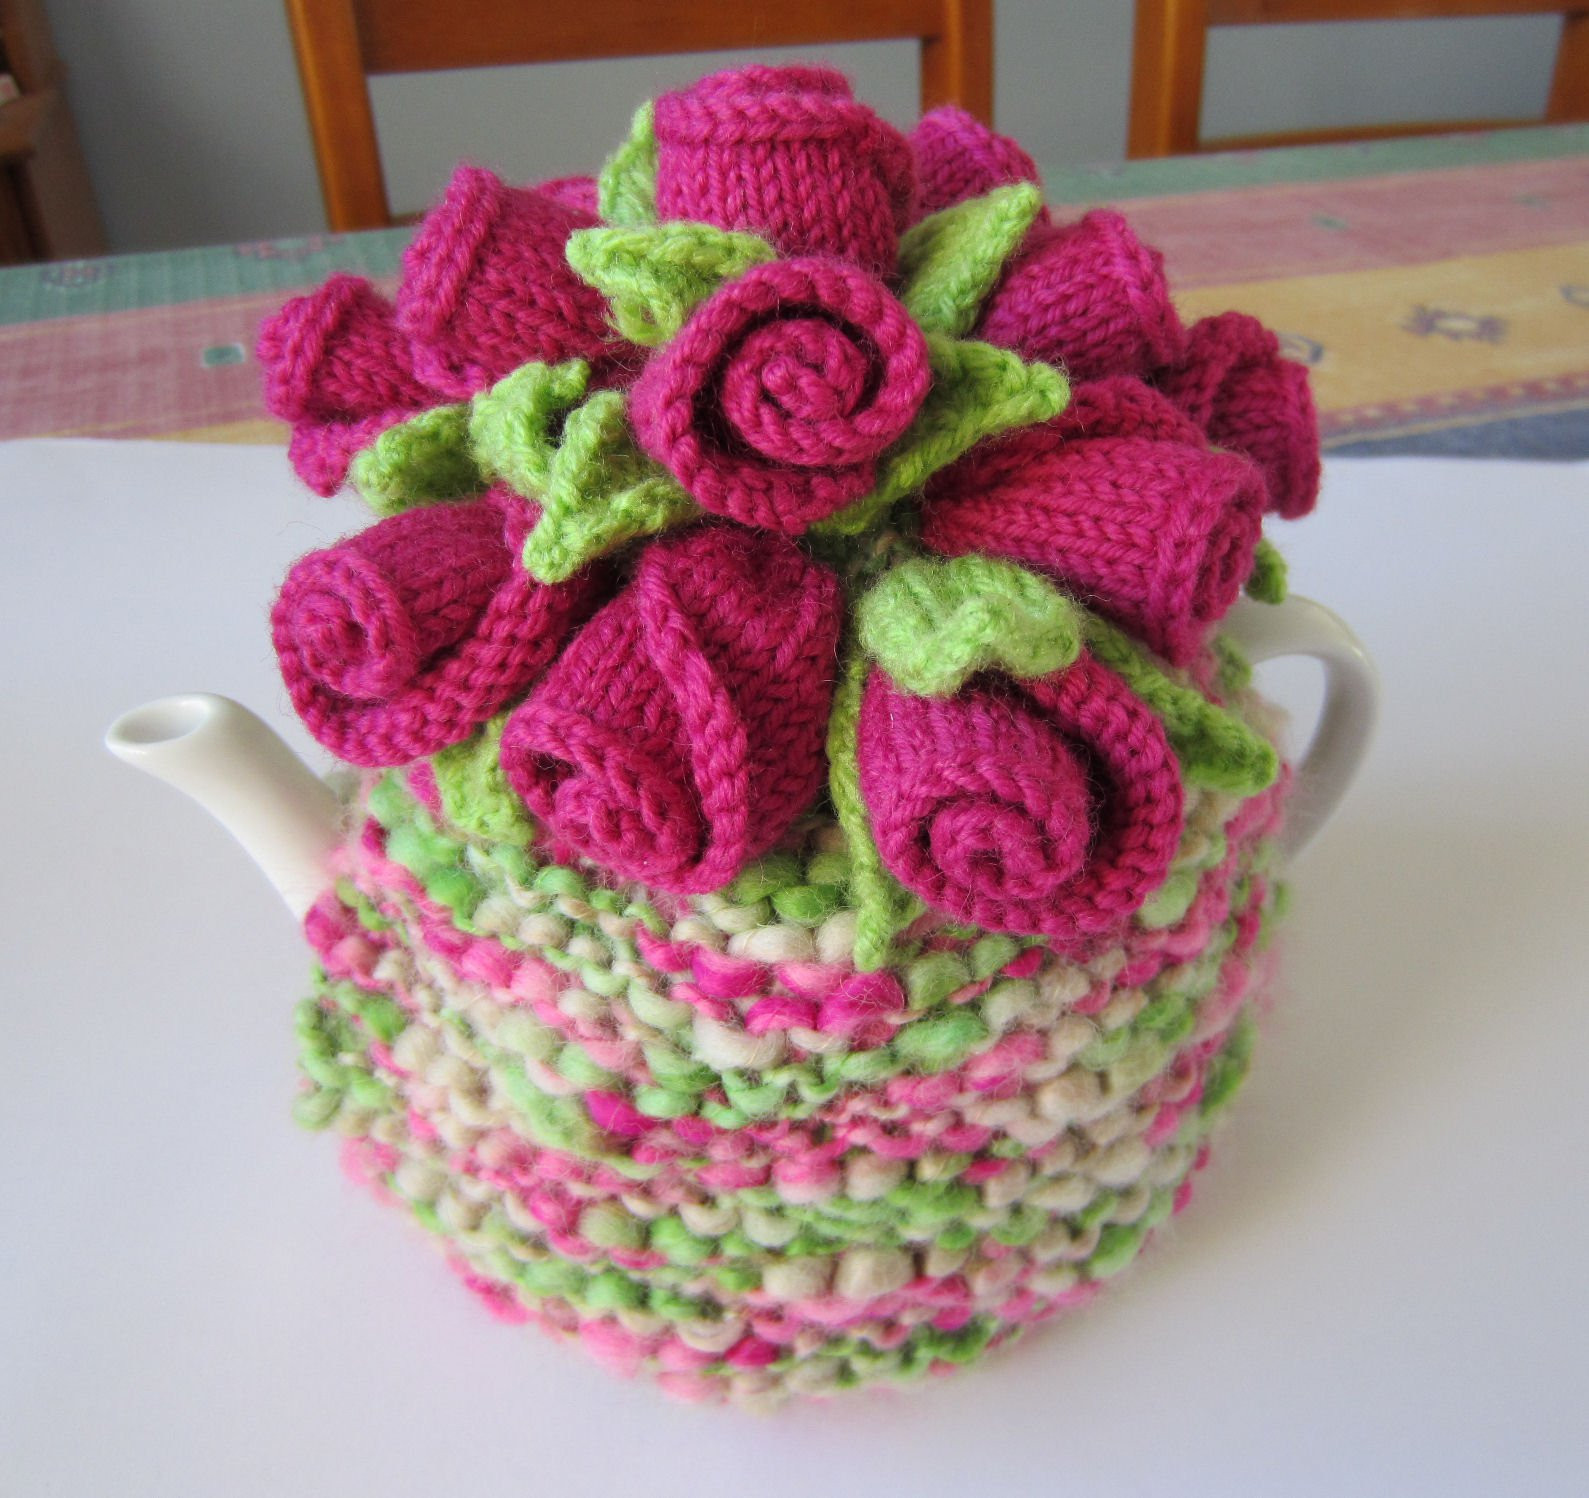 Unique 20 Handmade Tea Cozy with Patterns Page 2 Of 3 Tea Cozy Crochet Pattern Of Perfect 49 Models Tea Cozy Crochet Pattern